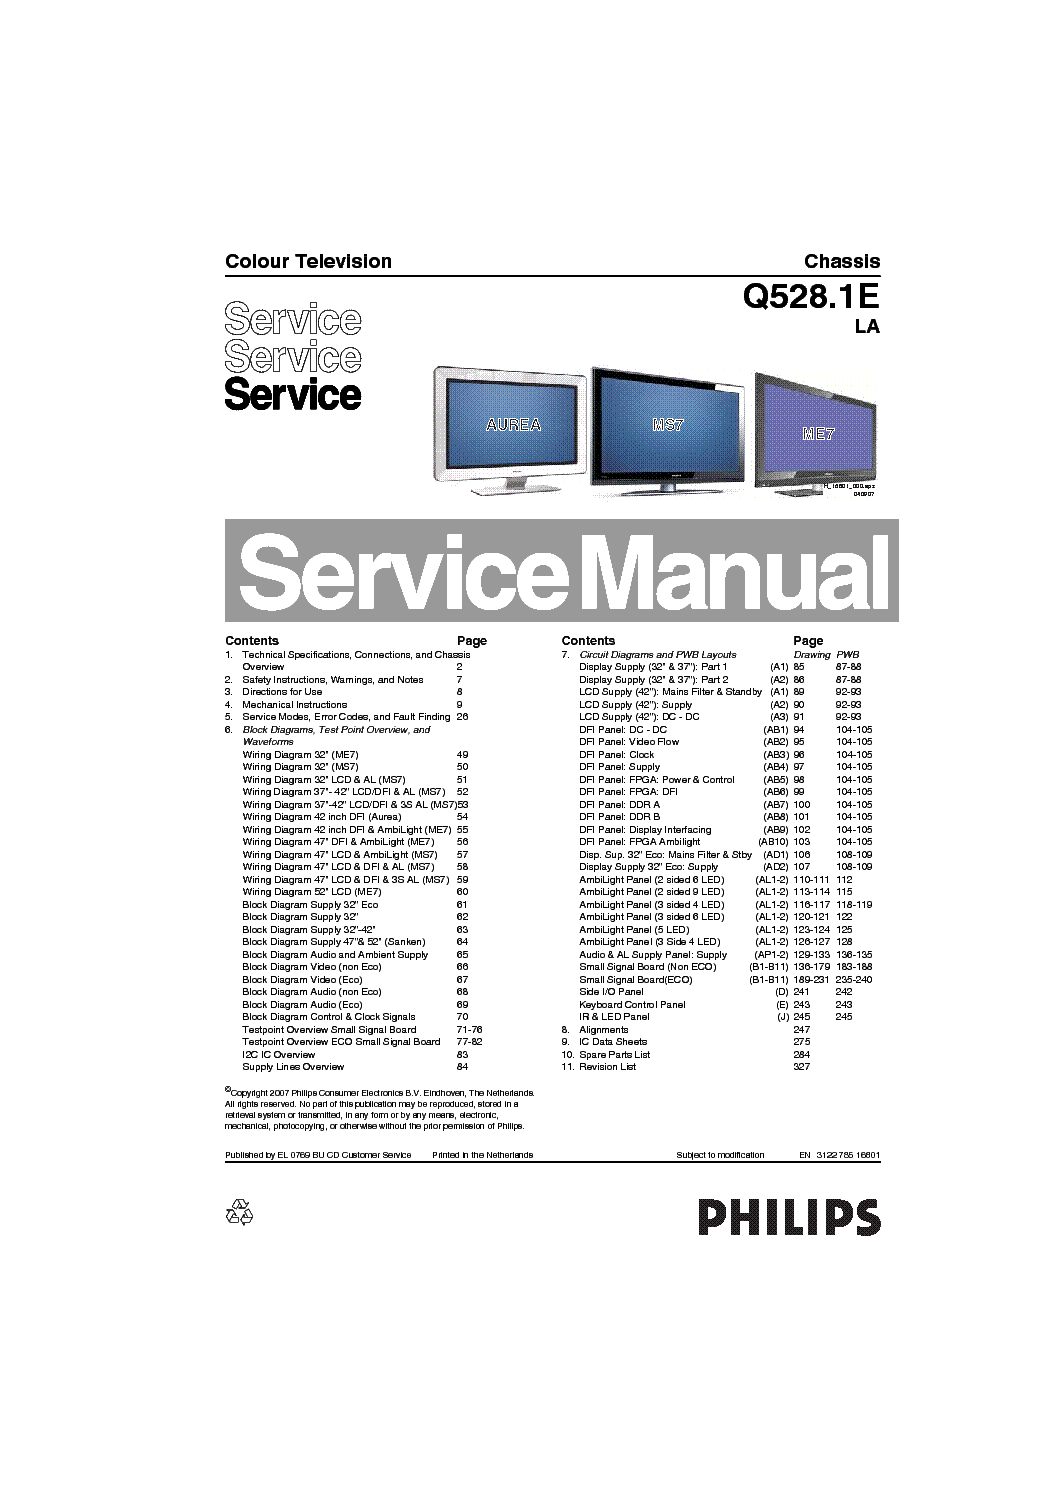 PHILIPS CHASSIS KT4 SCH Service Manual free download